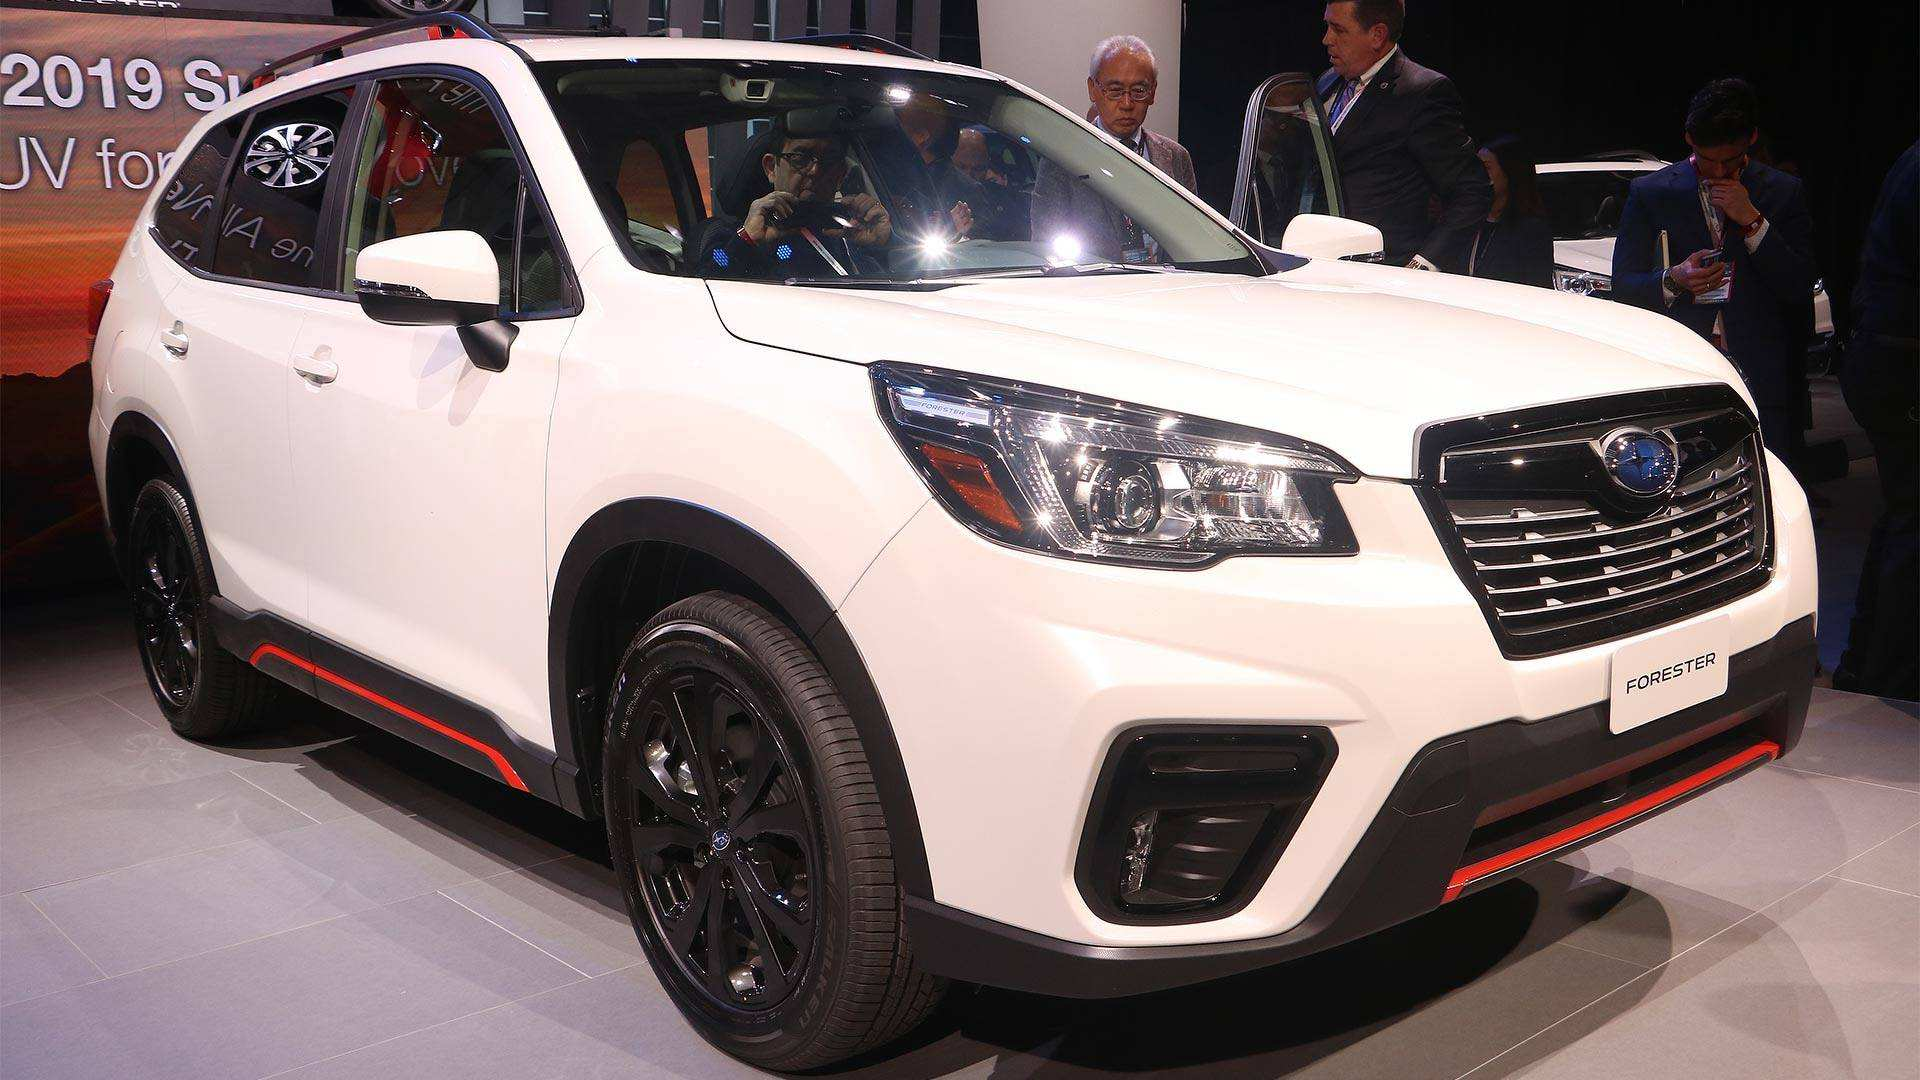 93 Great The Subaru 2019 Forester Specs Interior Rumors with The Subaru 2019 Forester Specs Interior